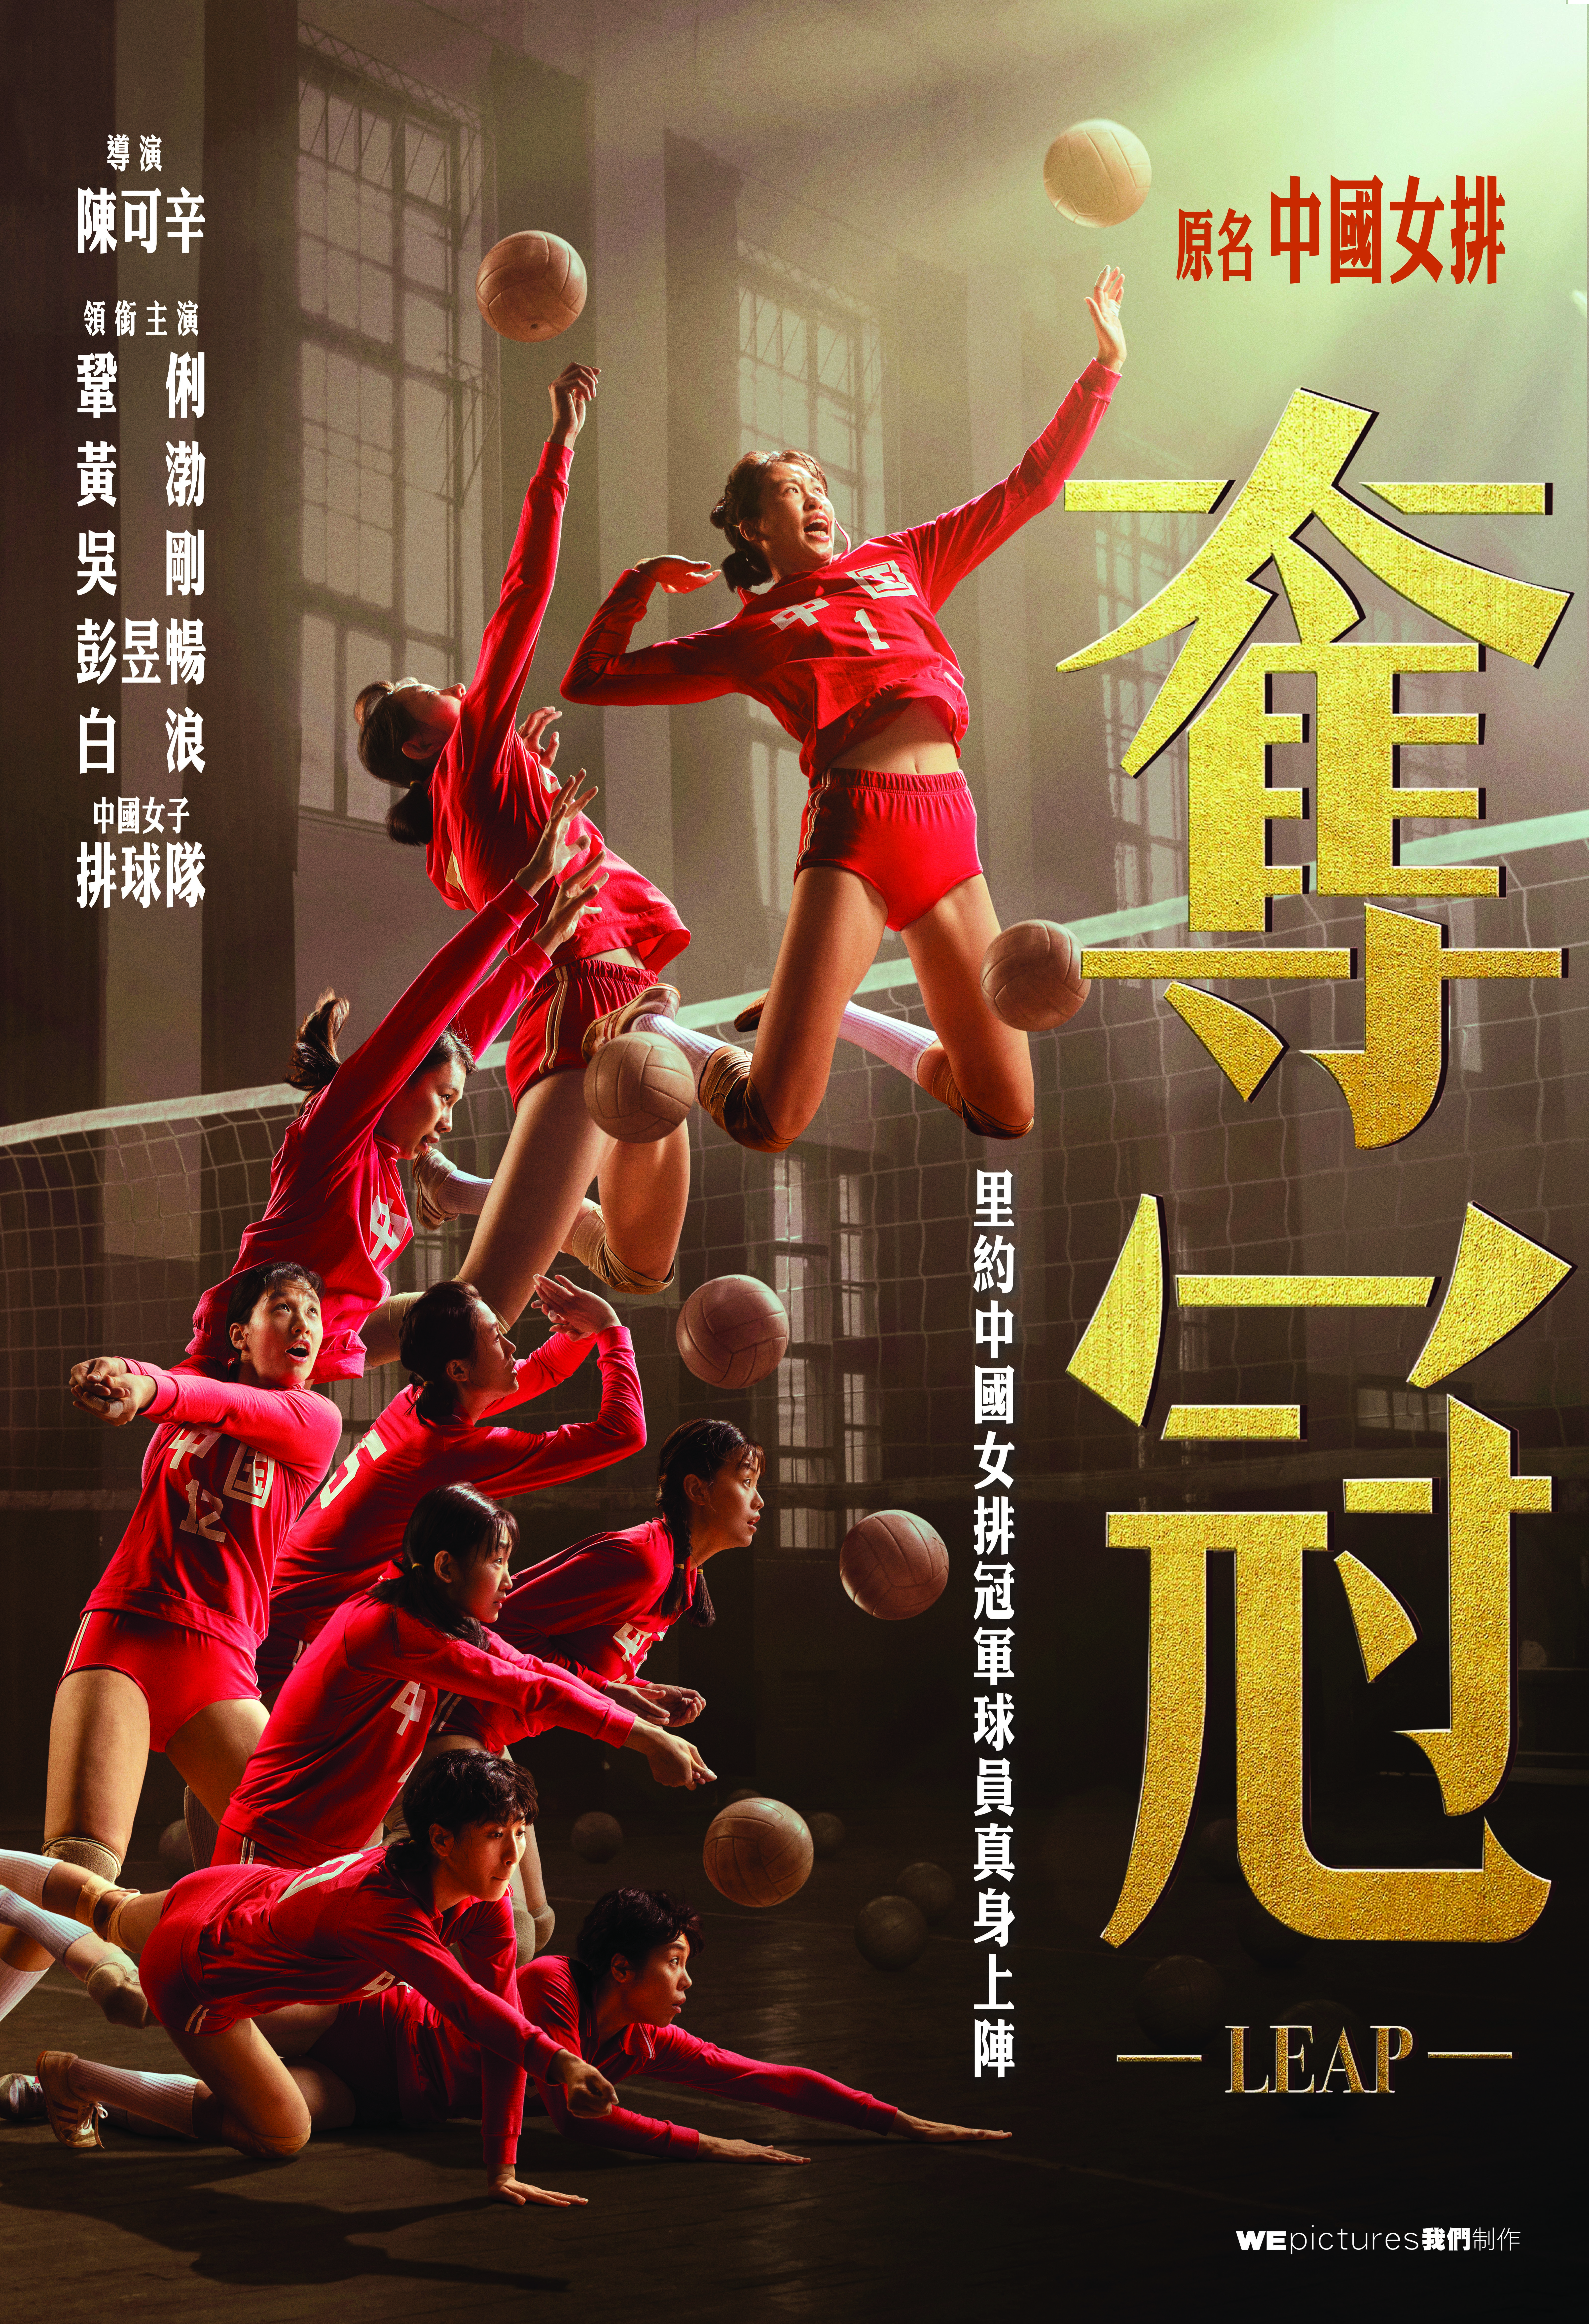 Theatrical poster for Leap.